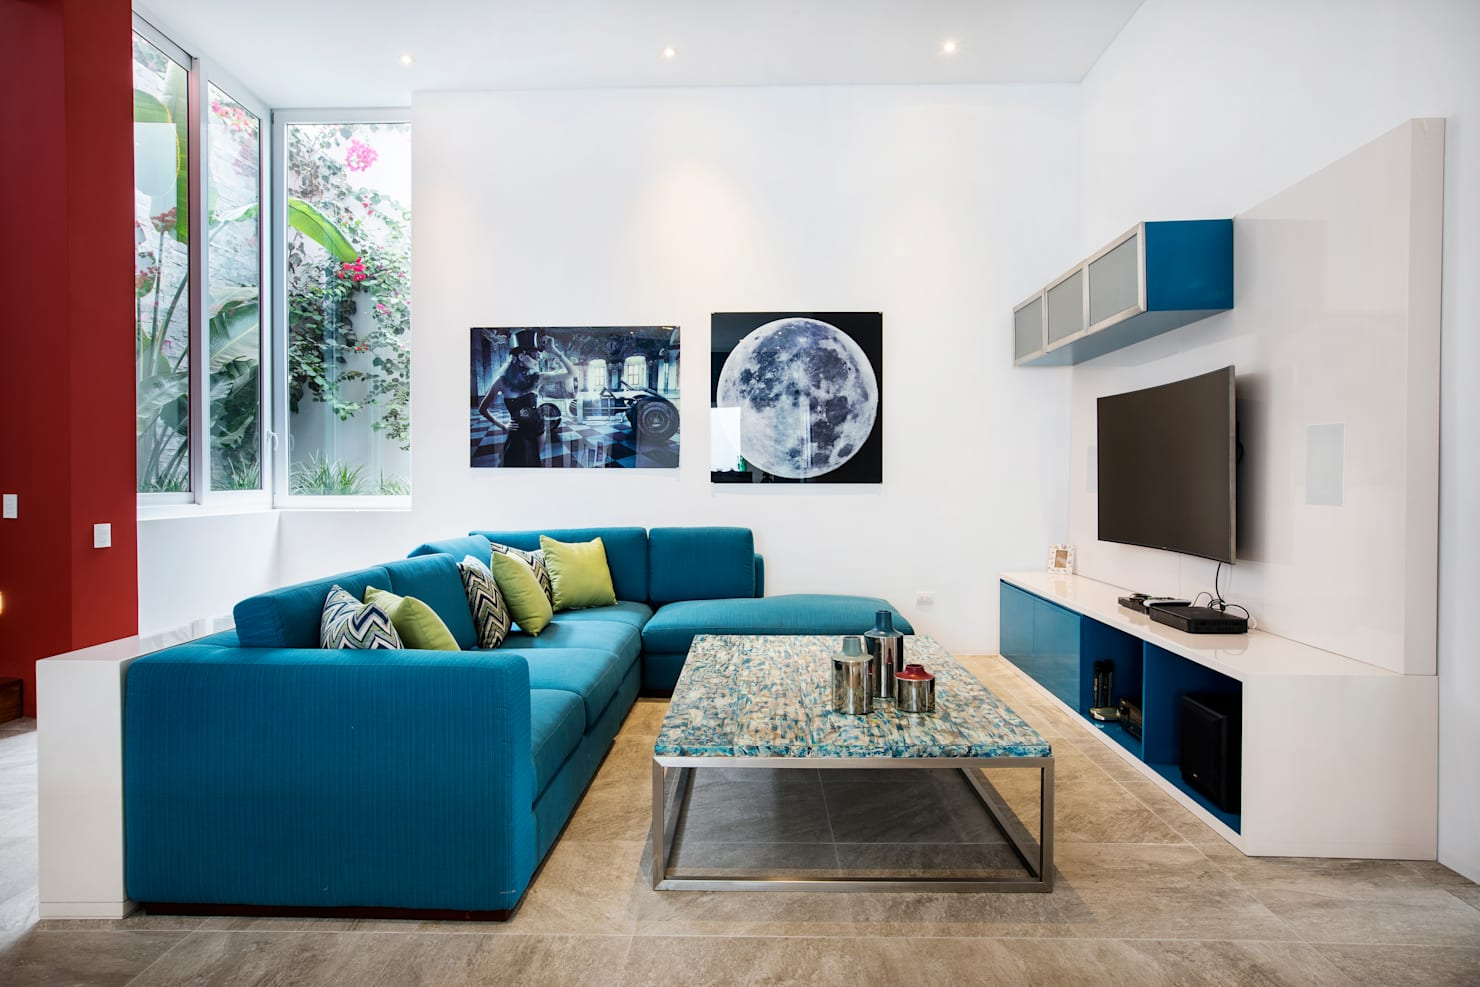 8 suggestions for places to put your TV